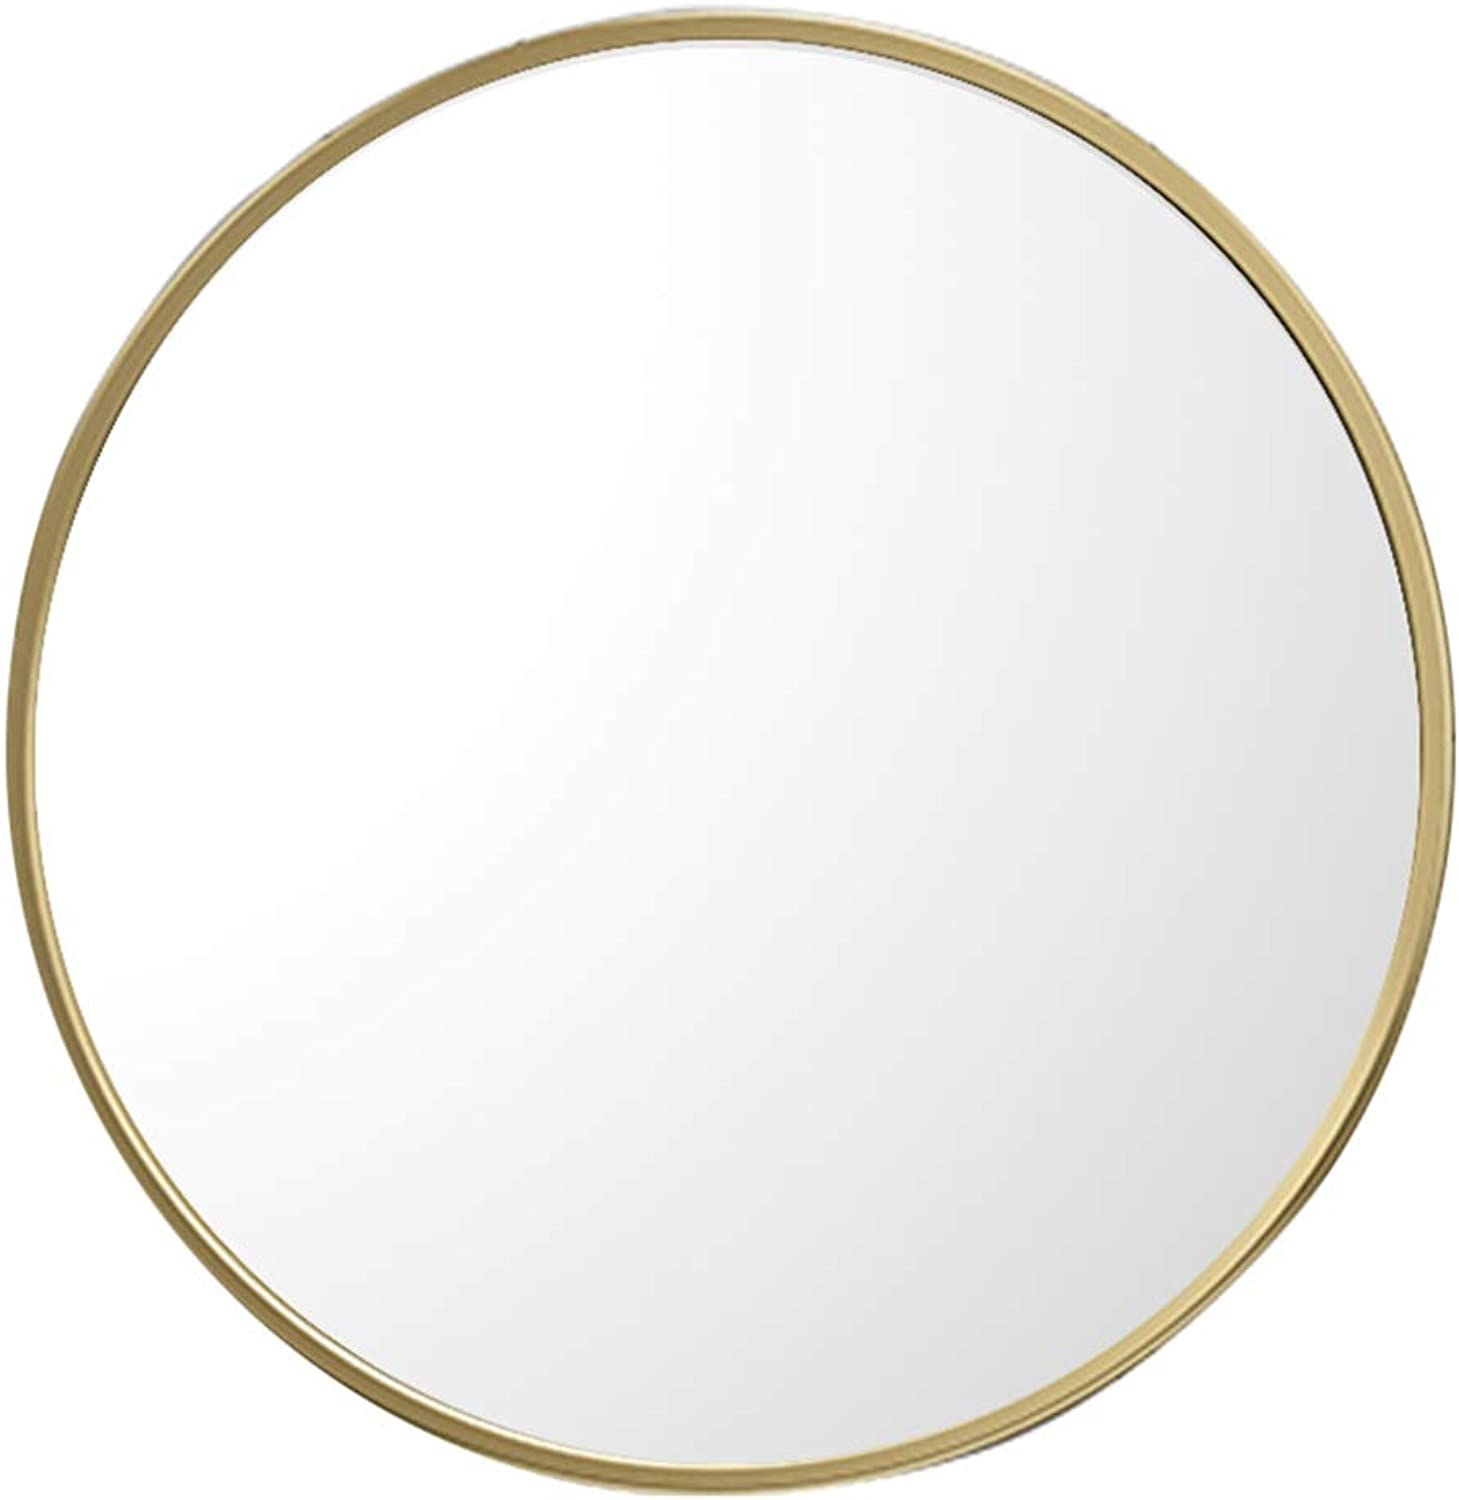 Hub Wall Mirror Round Wall Mirror for Entryways, Bathroom Washrooms Living Rooms and Bedroom Decorative Shaving Large Vanity Dressing (gold)